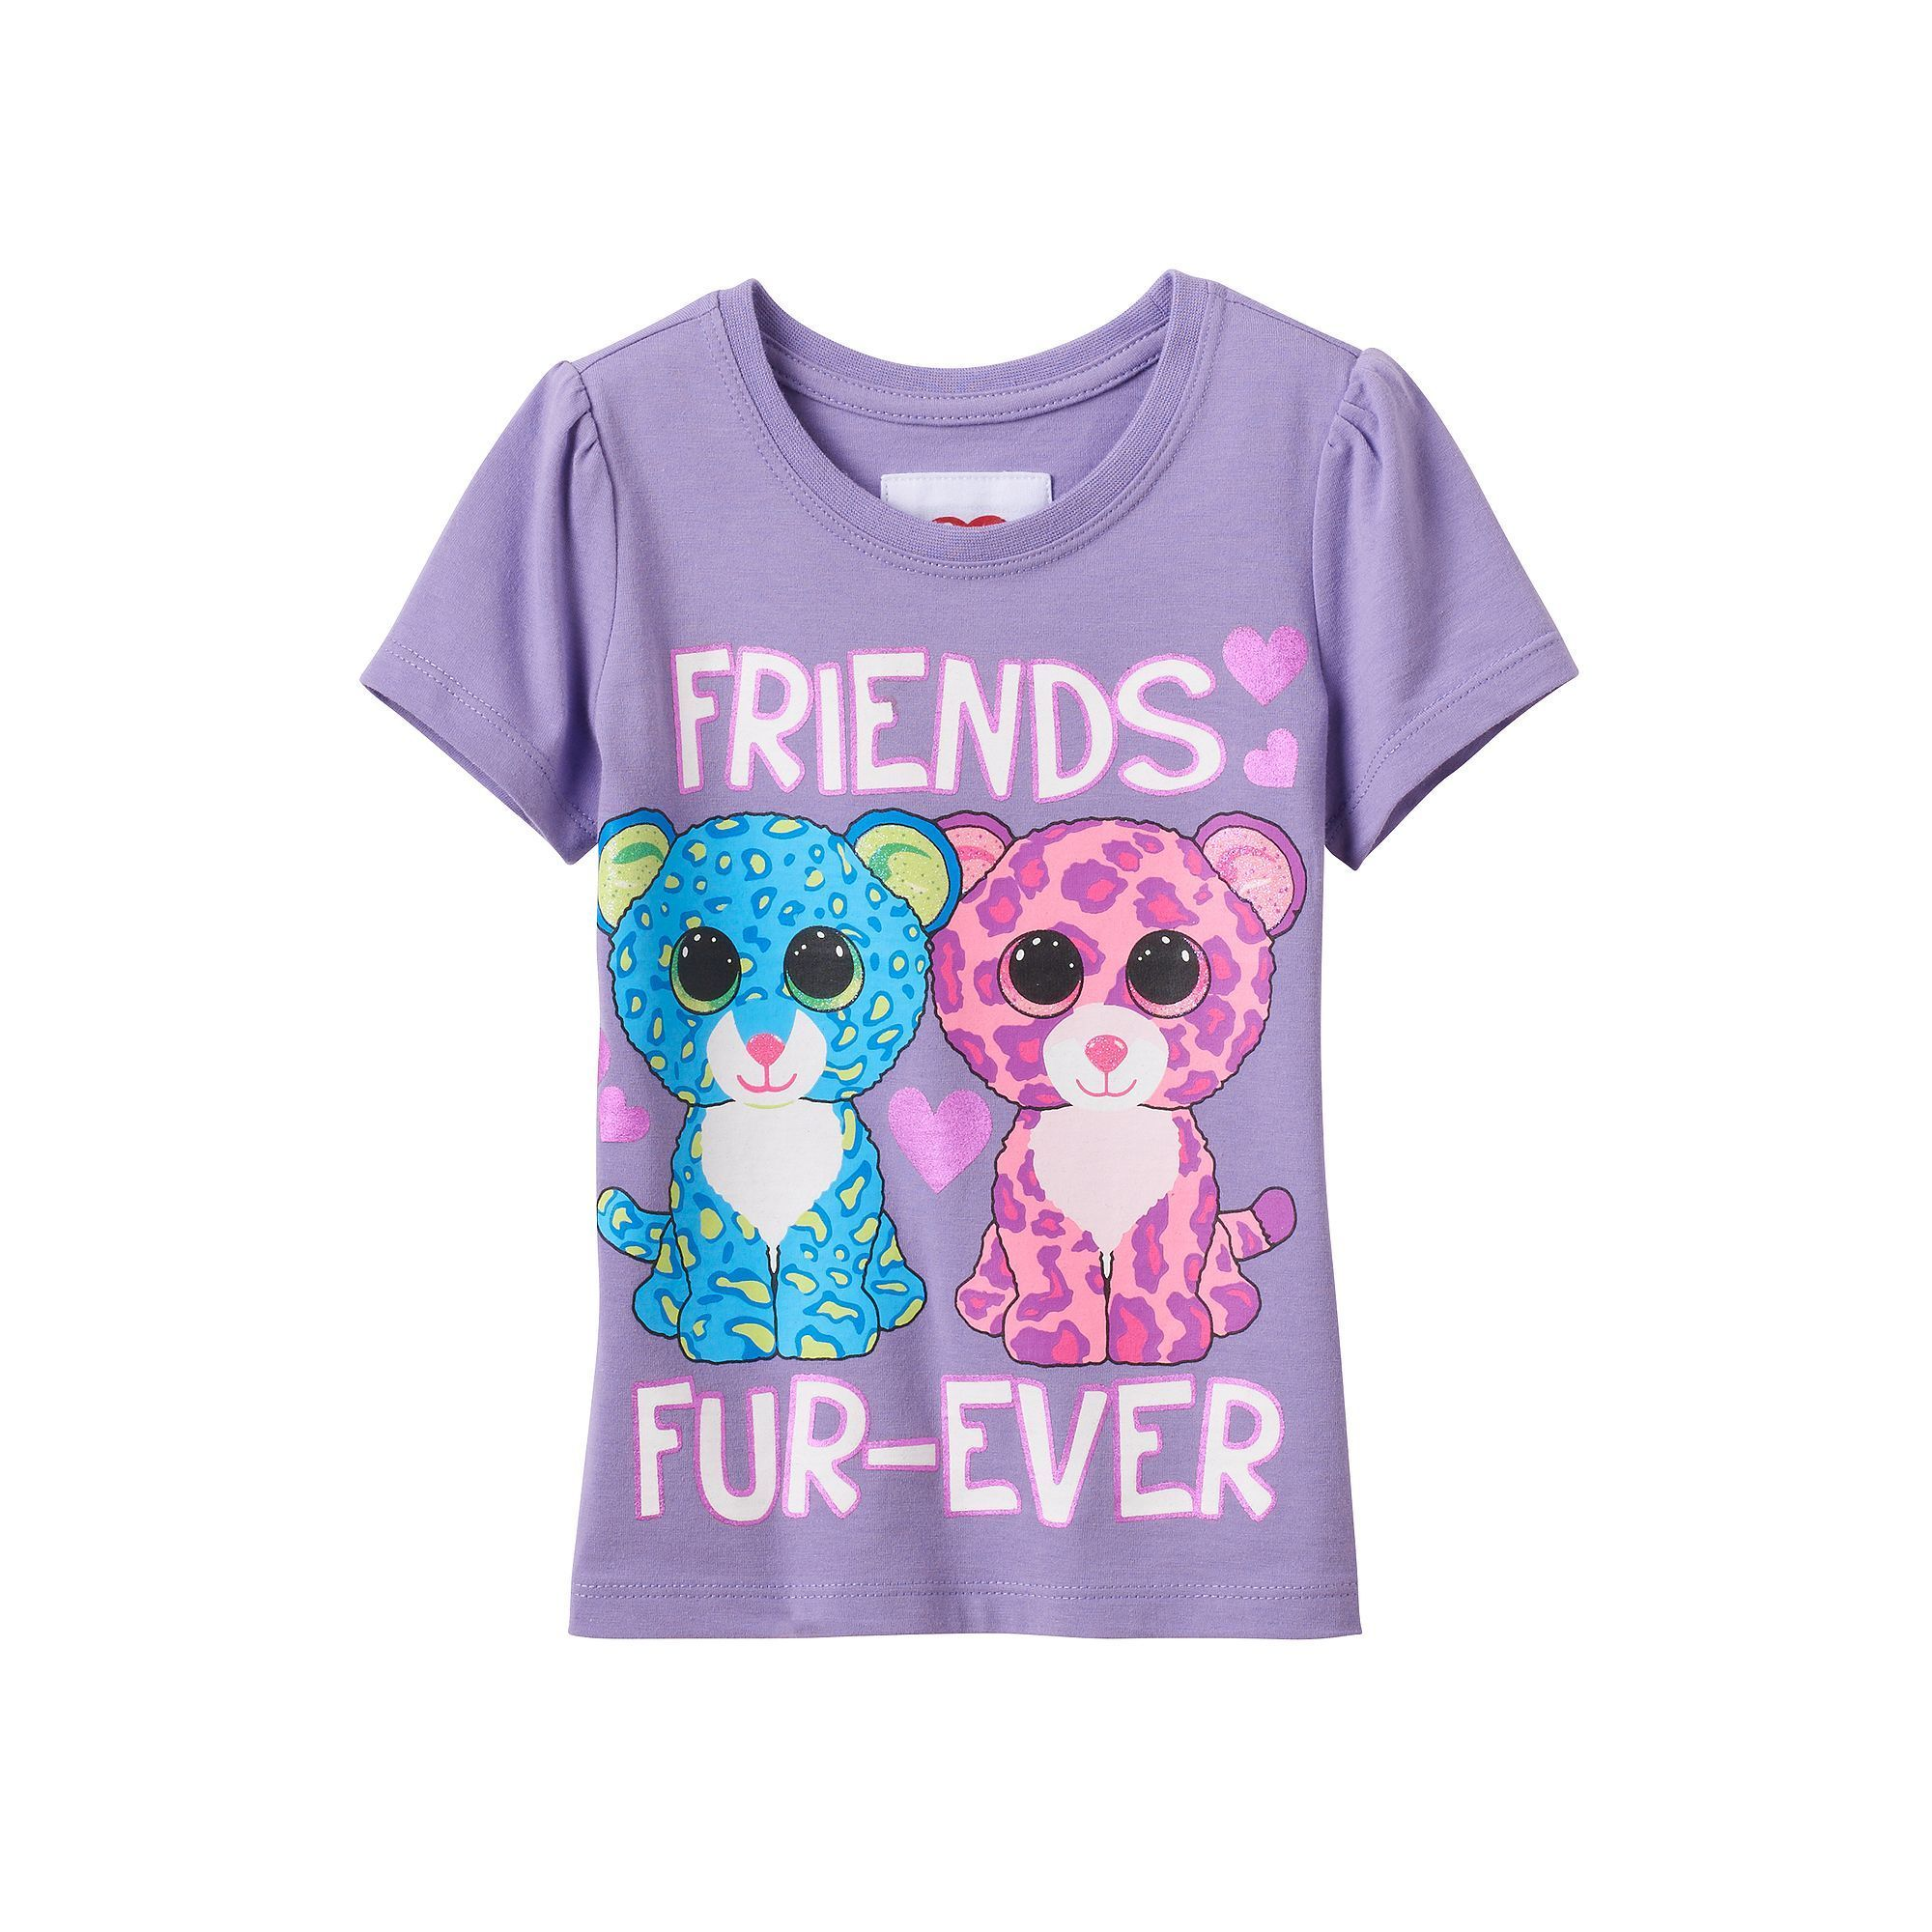 b114051a677 Toddler Girl Beanie Boos Leona   Glamour Leopard Graphic Tee ...